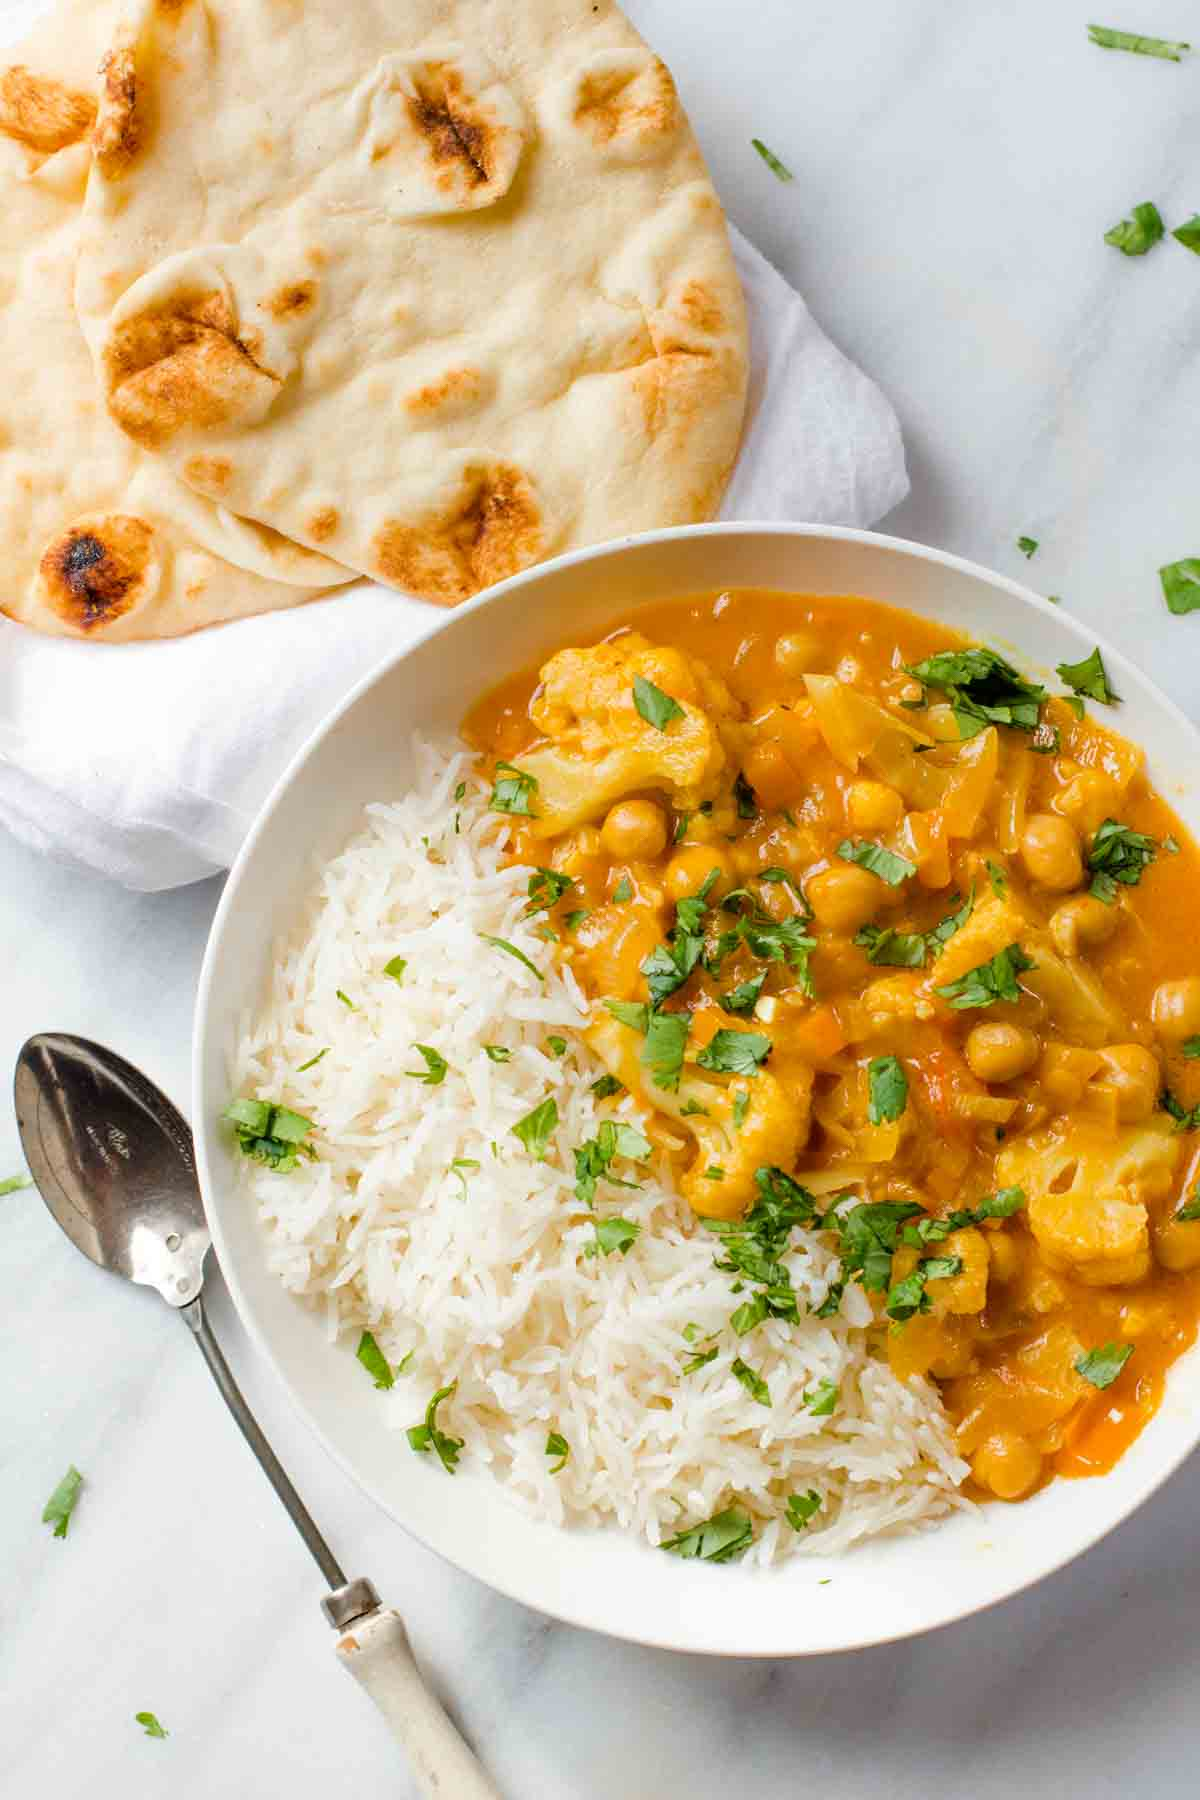 Cauliflower and Chickpea Curry in a white bowl with rice, with a spoon nearby